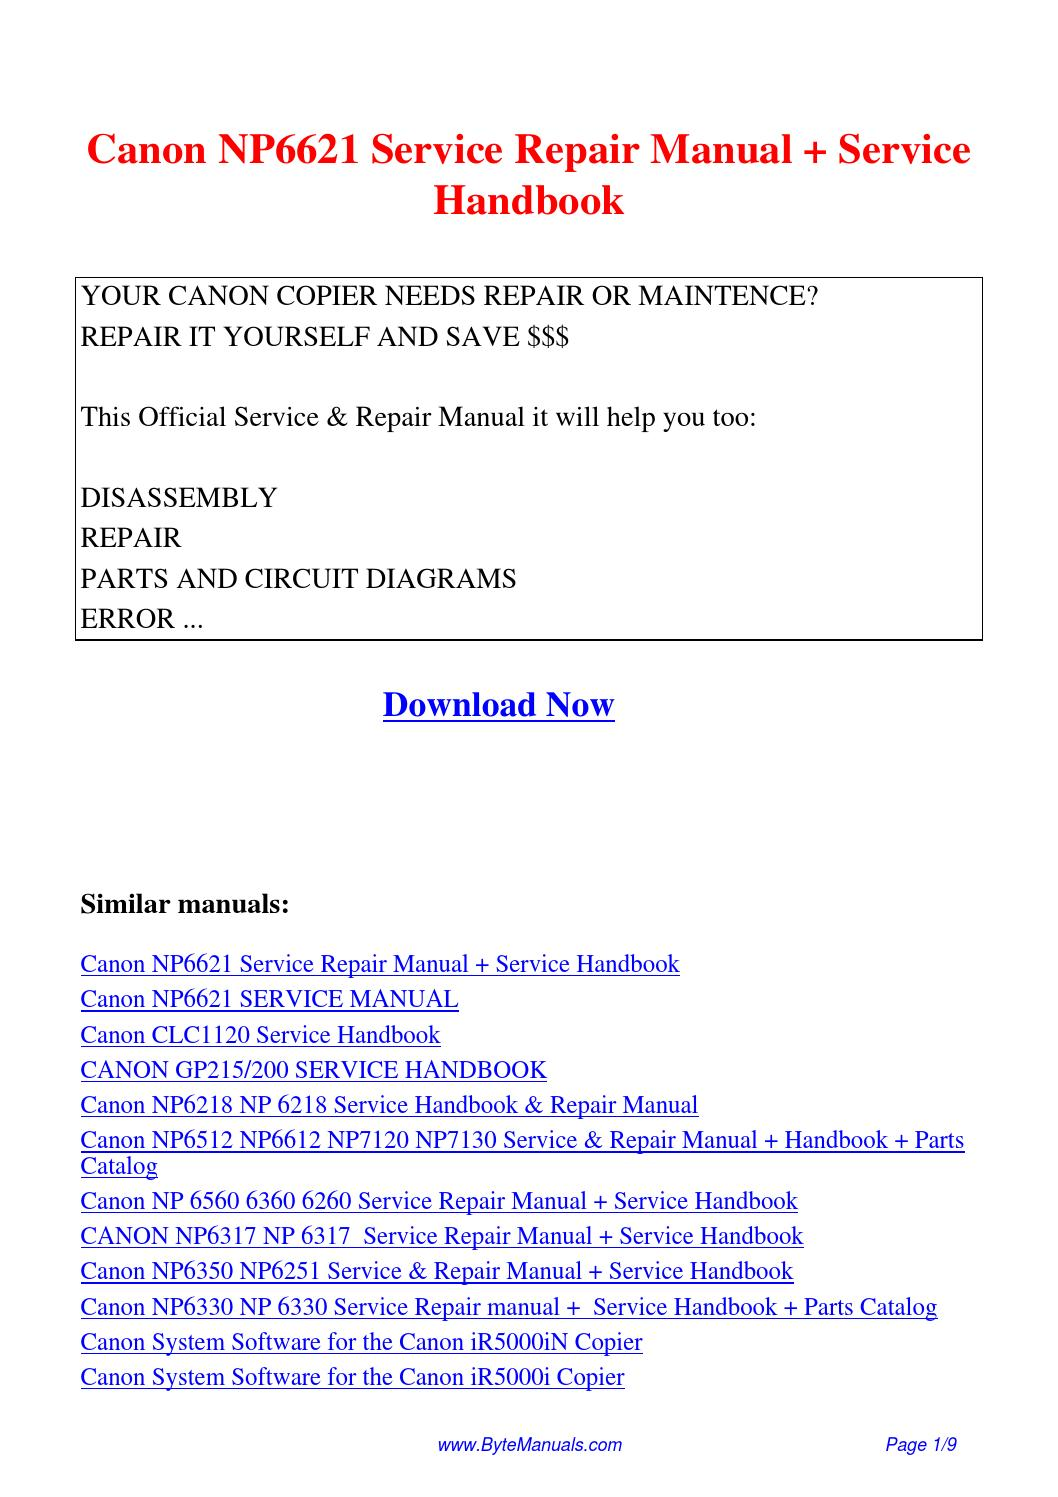 Canon NP6621 Service Repair Manual Service Handbook.pdf by Ging Tang - issuu